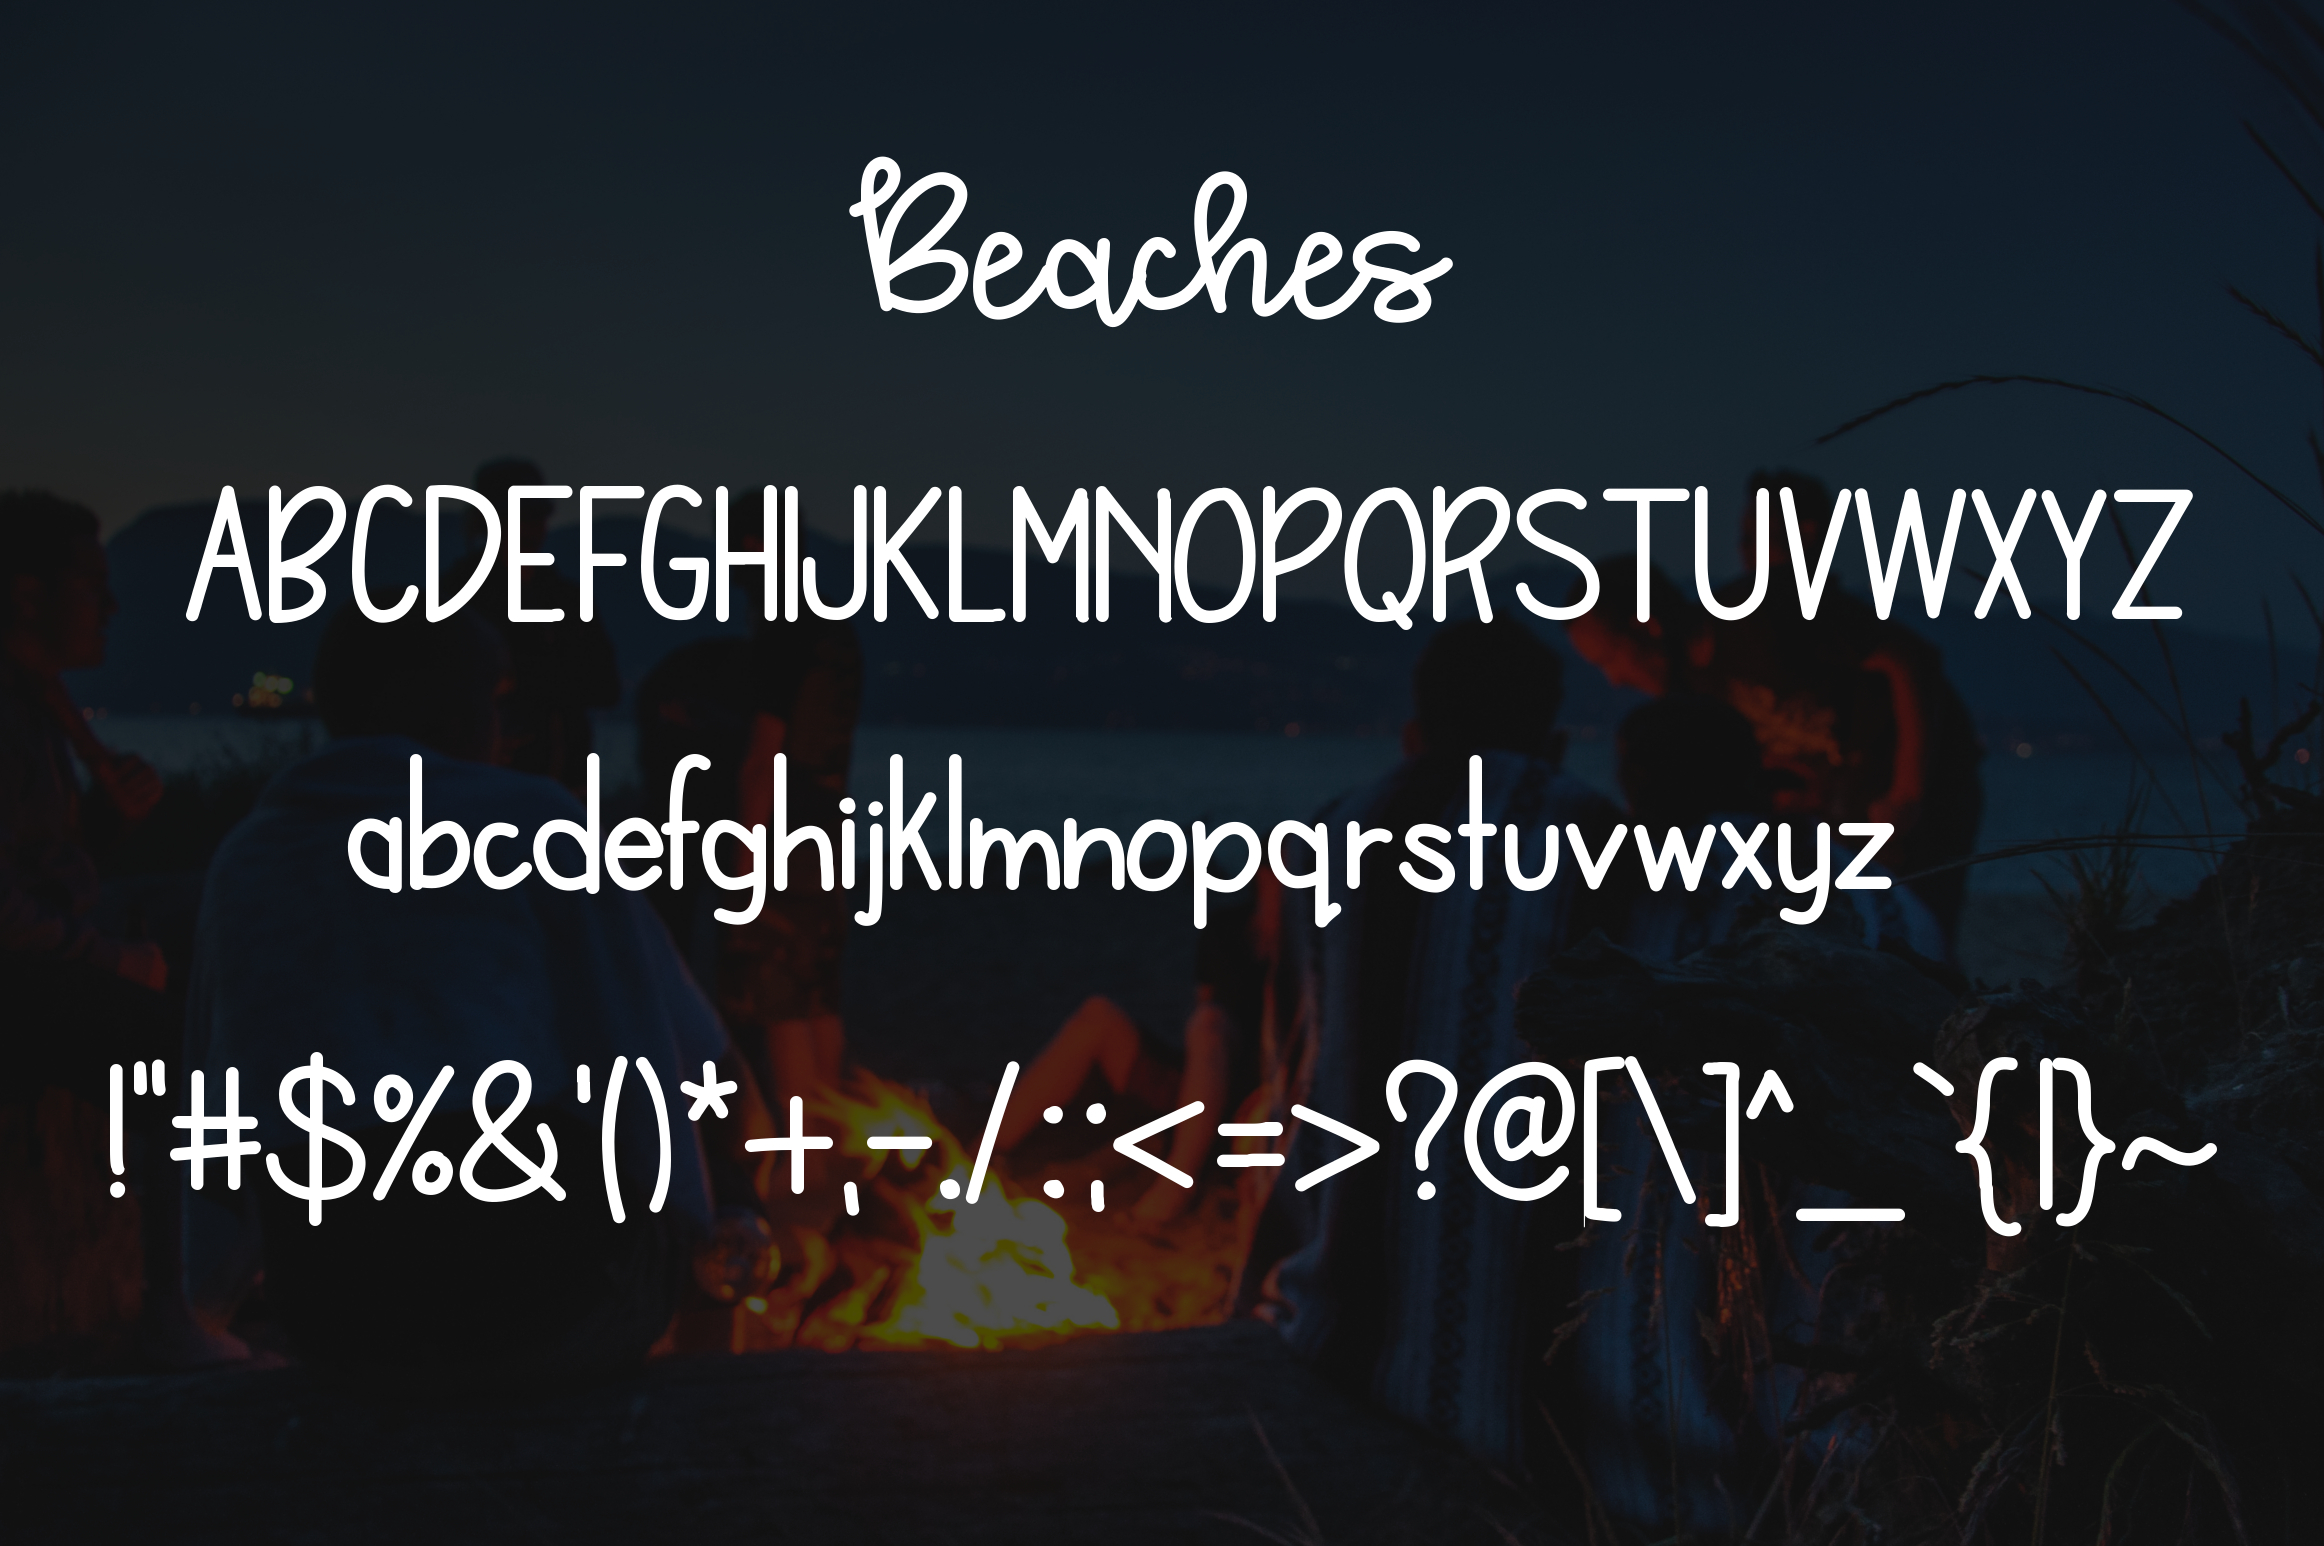 Bonfires & Beaches a Font Duo example image 3